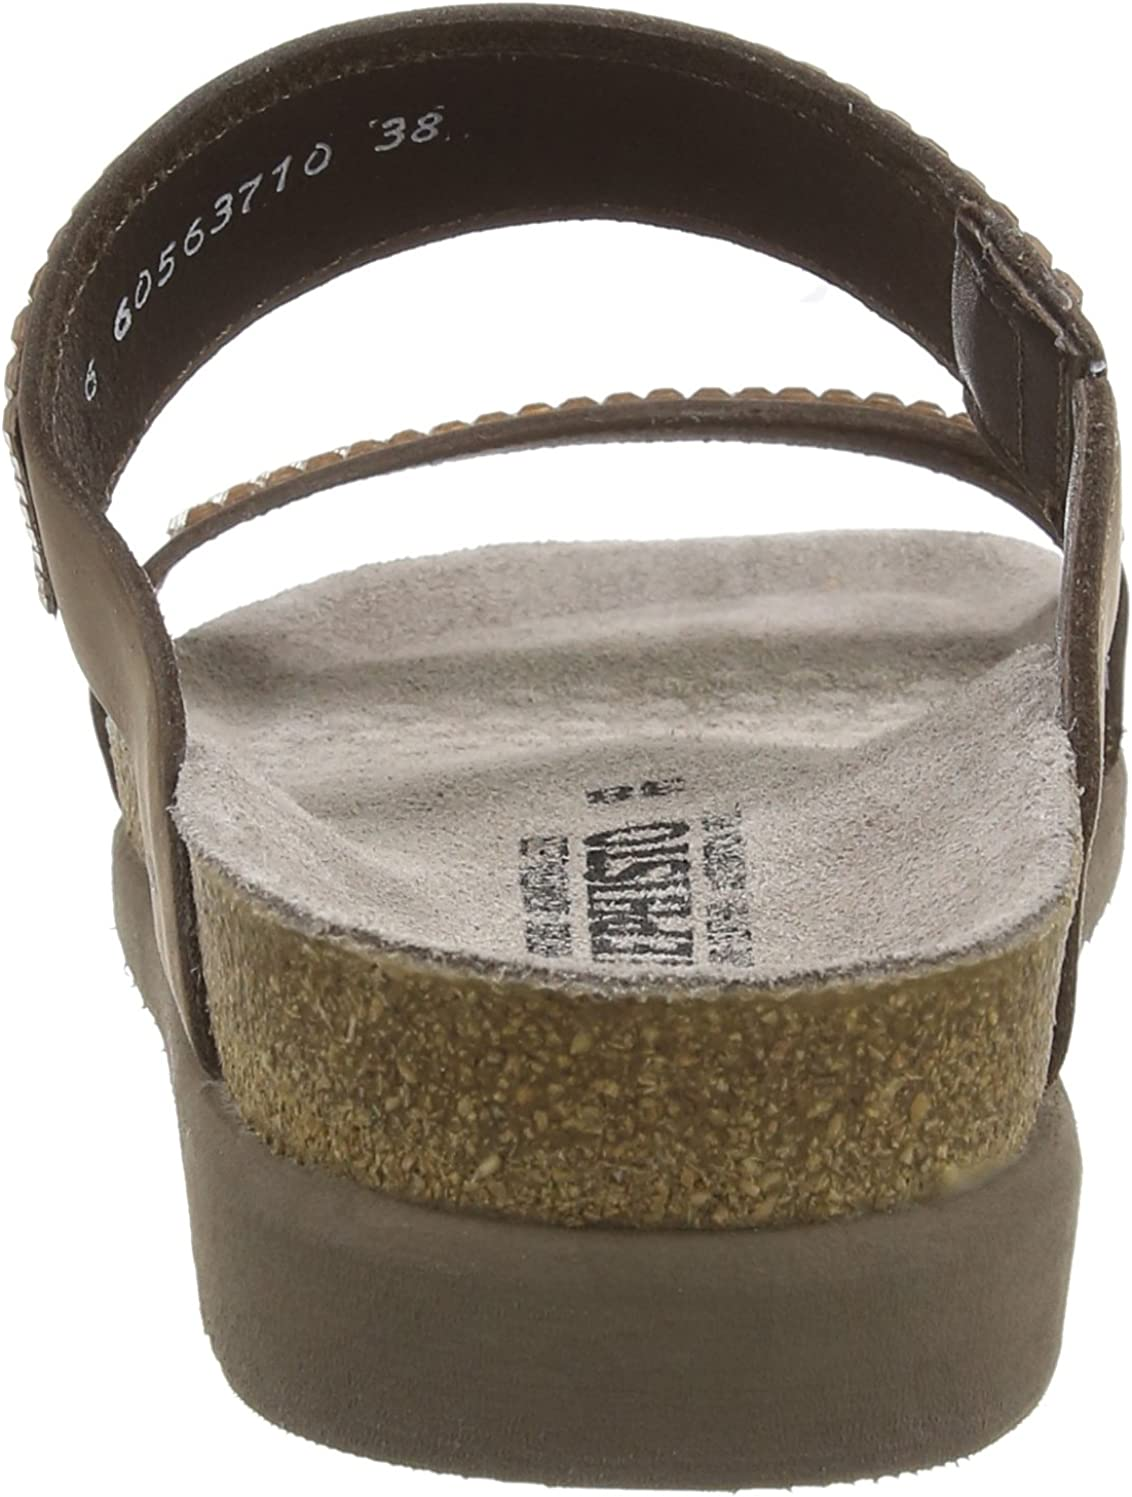 Mephisto Havila Sandalbuck 6051 Dark Brown, Sandali Aperti Donna Marrone Scuro